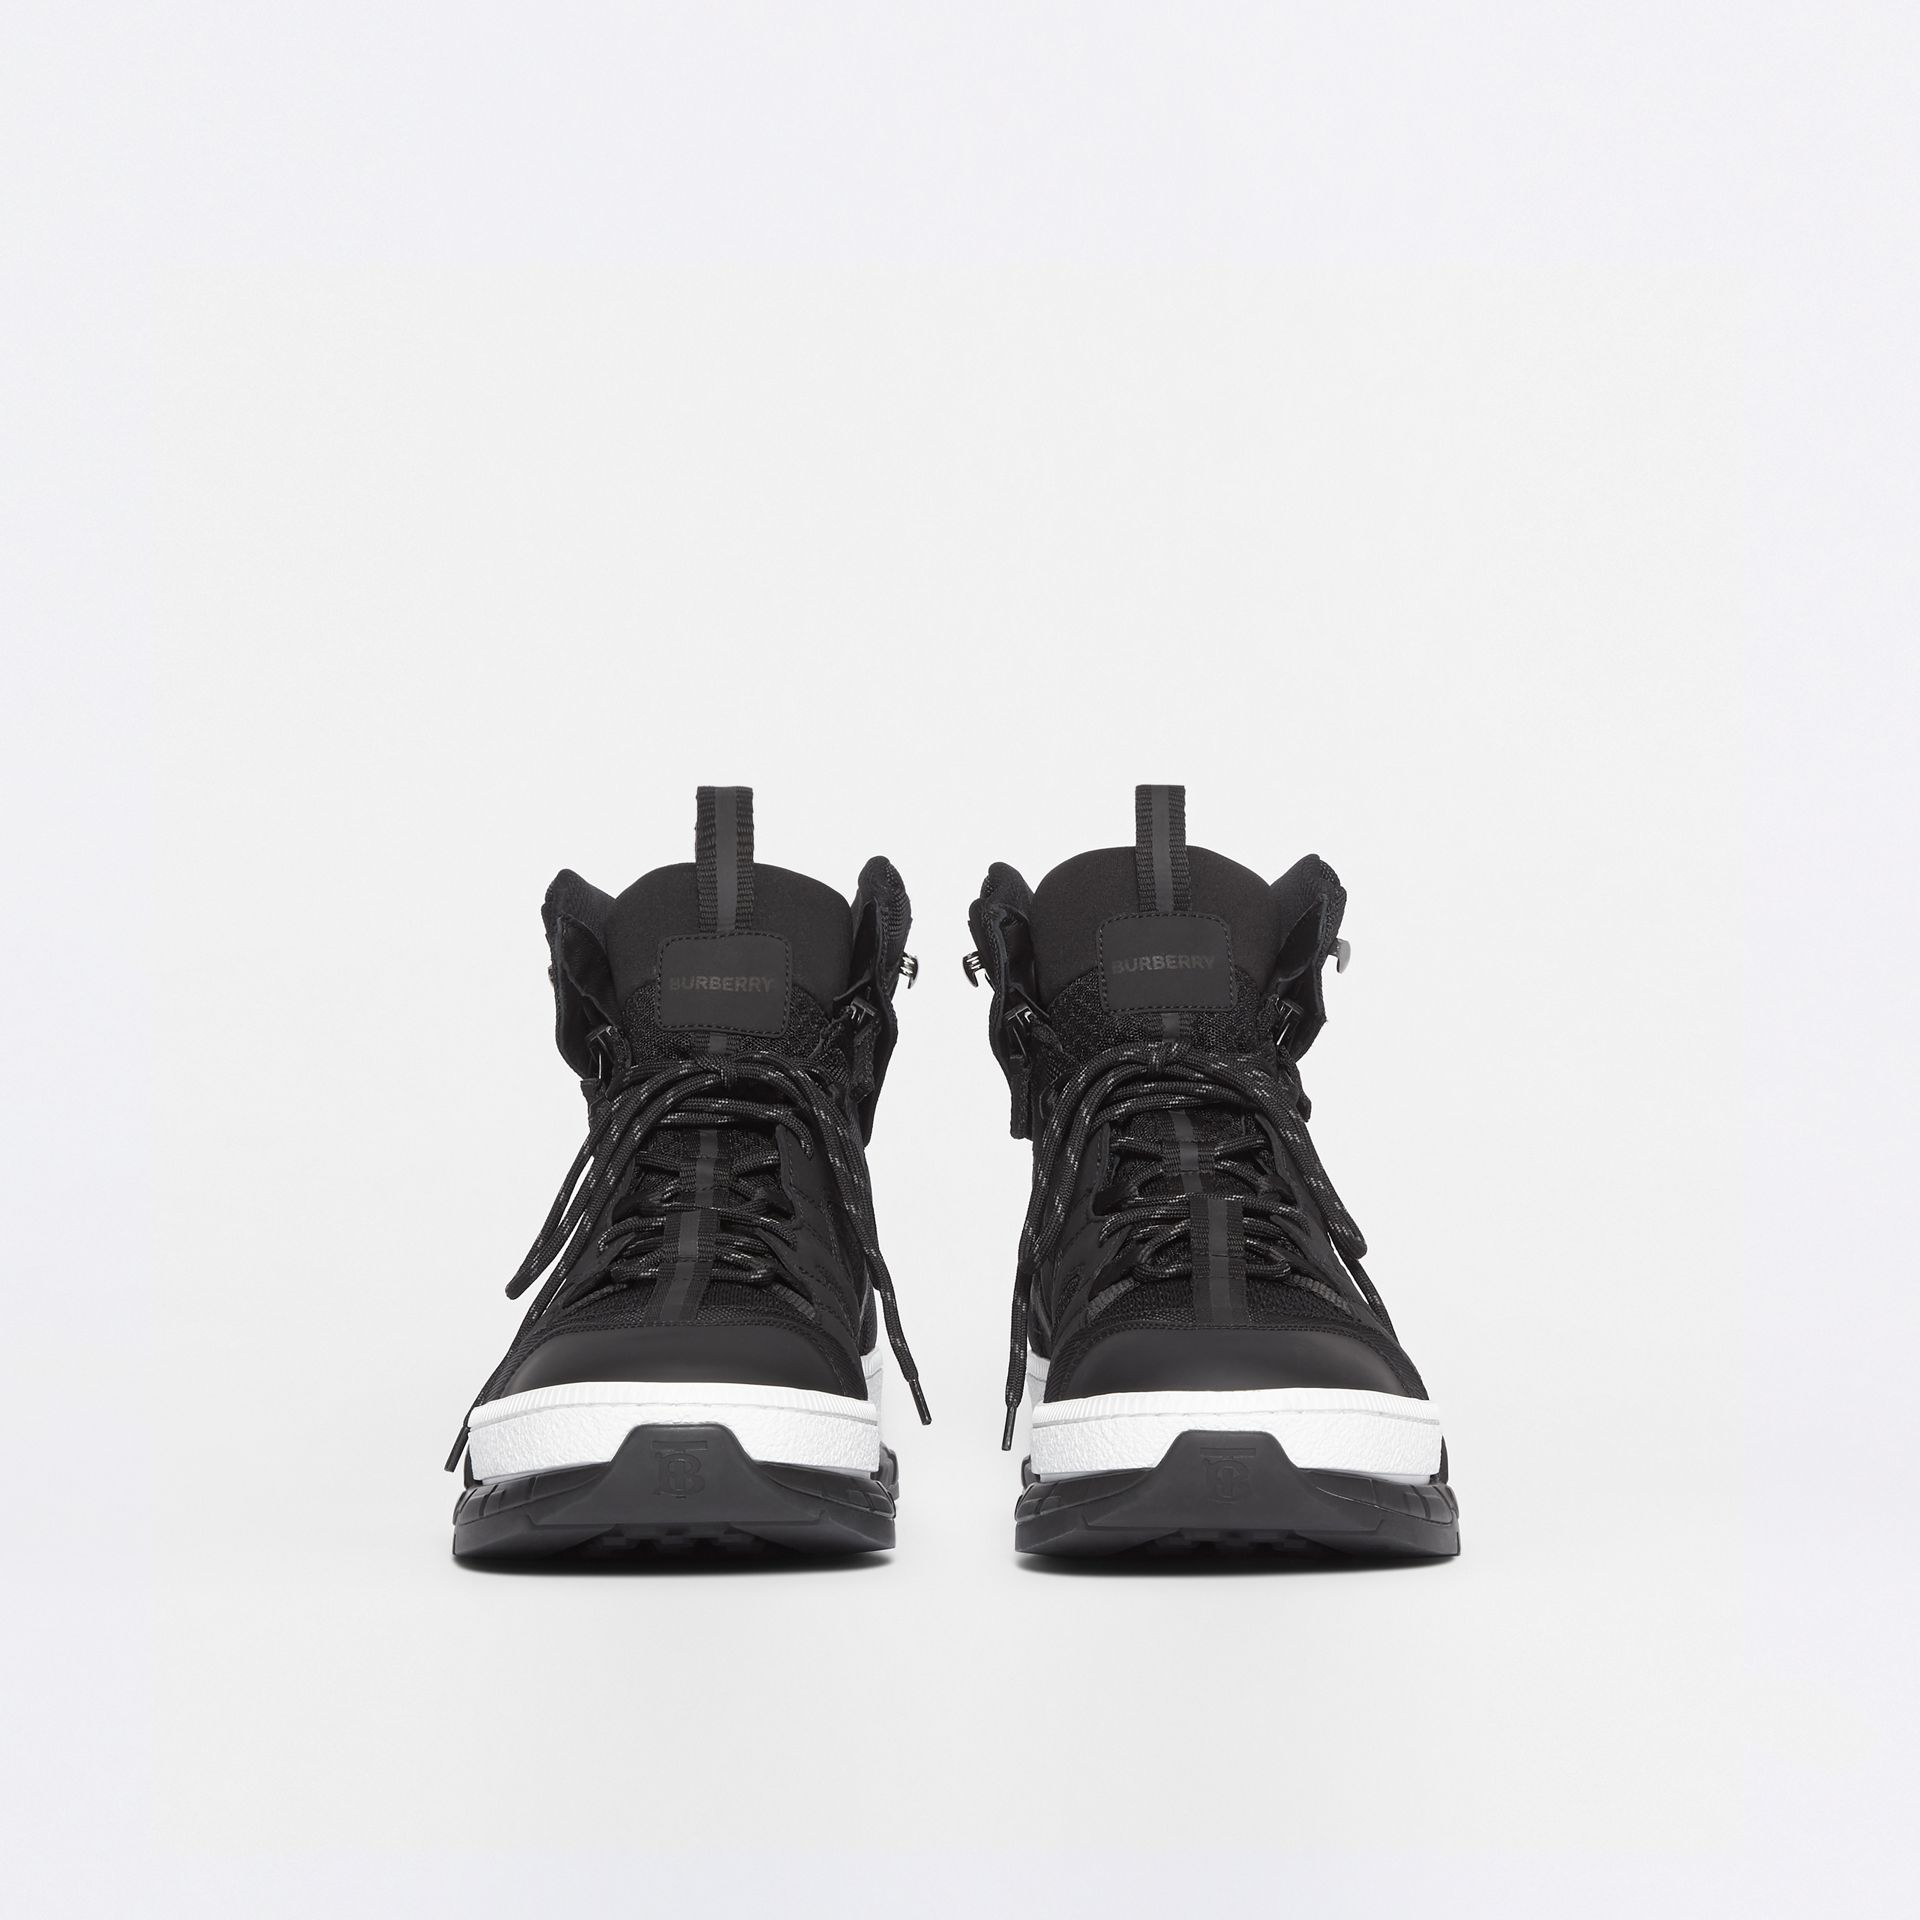 Mesh and Nubuck Union High-top Sneakers in Black - Men | Burberry - gallery image 3